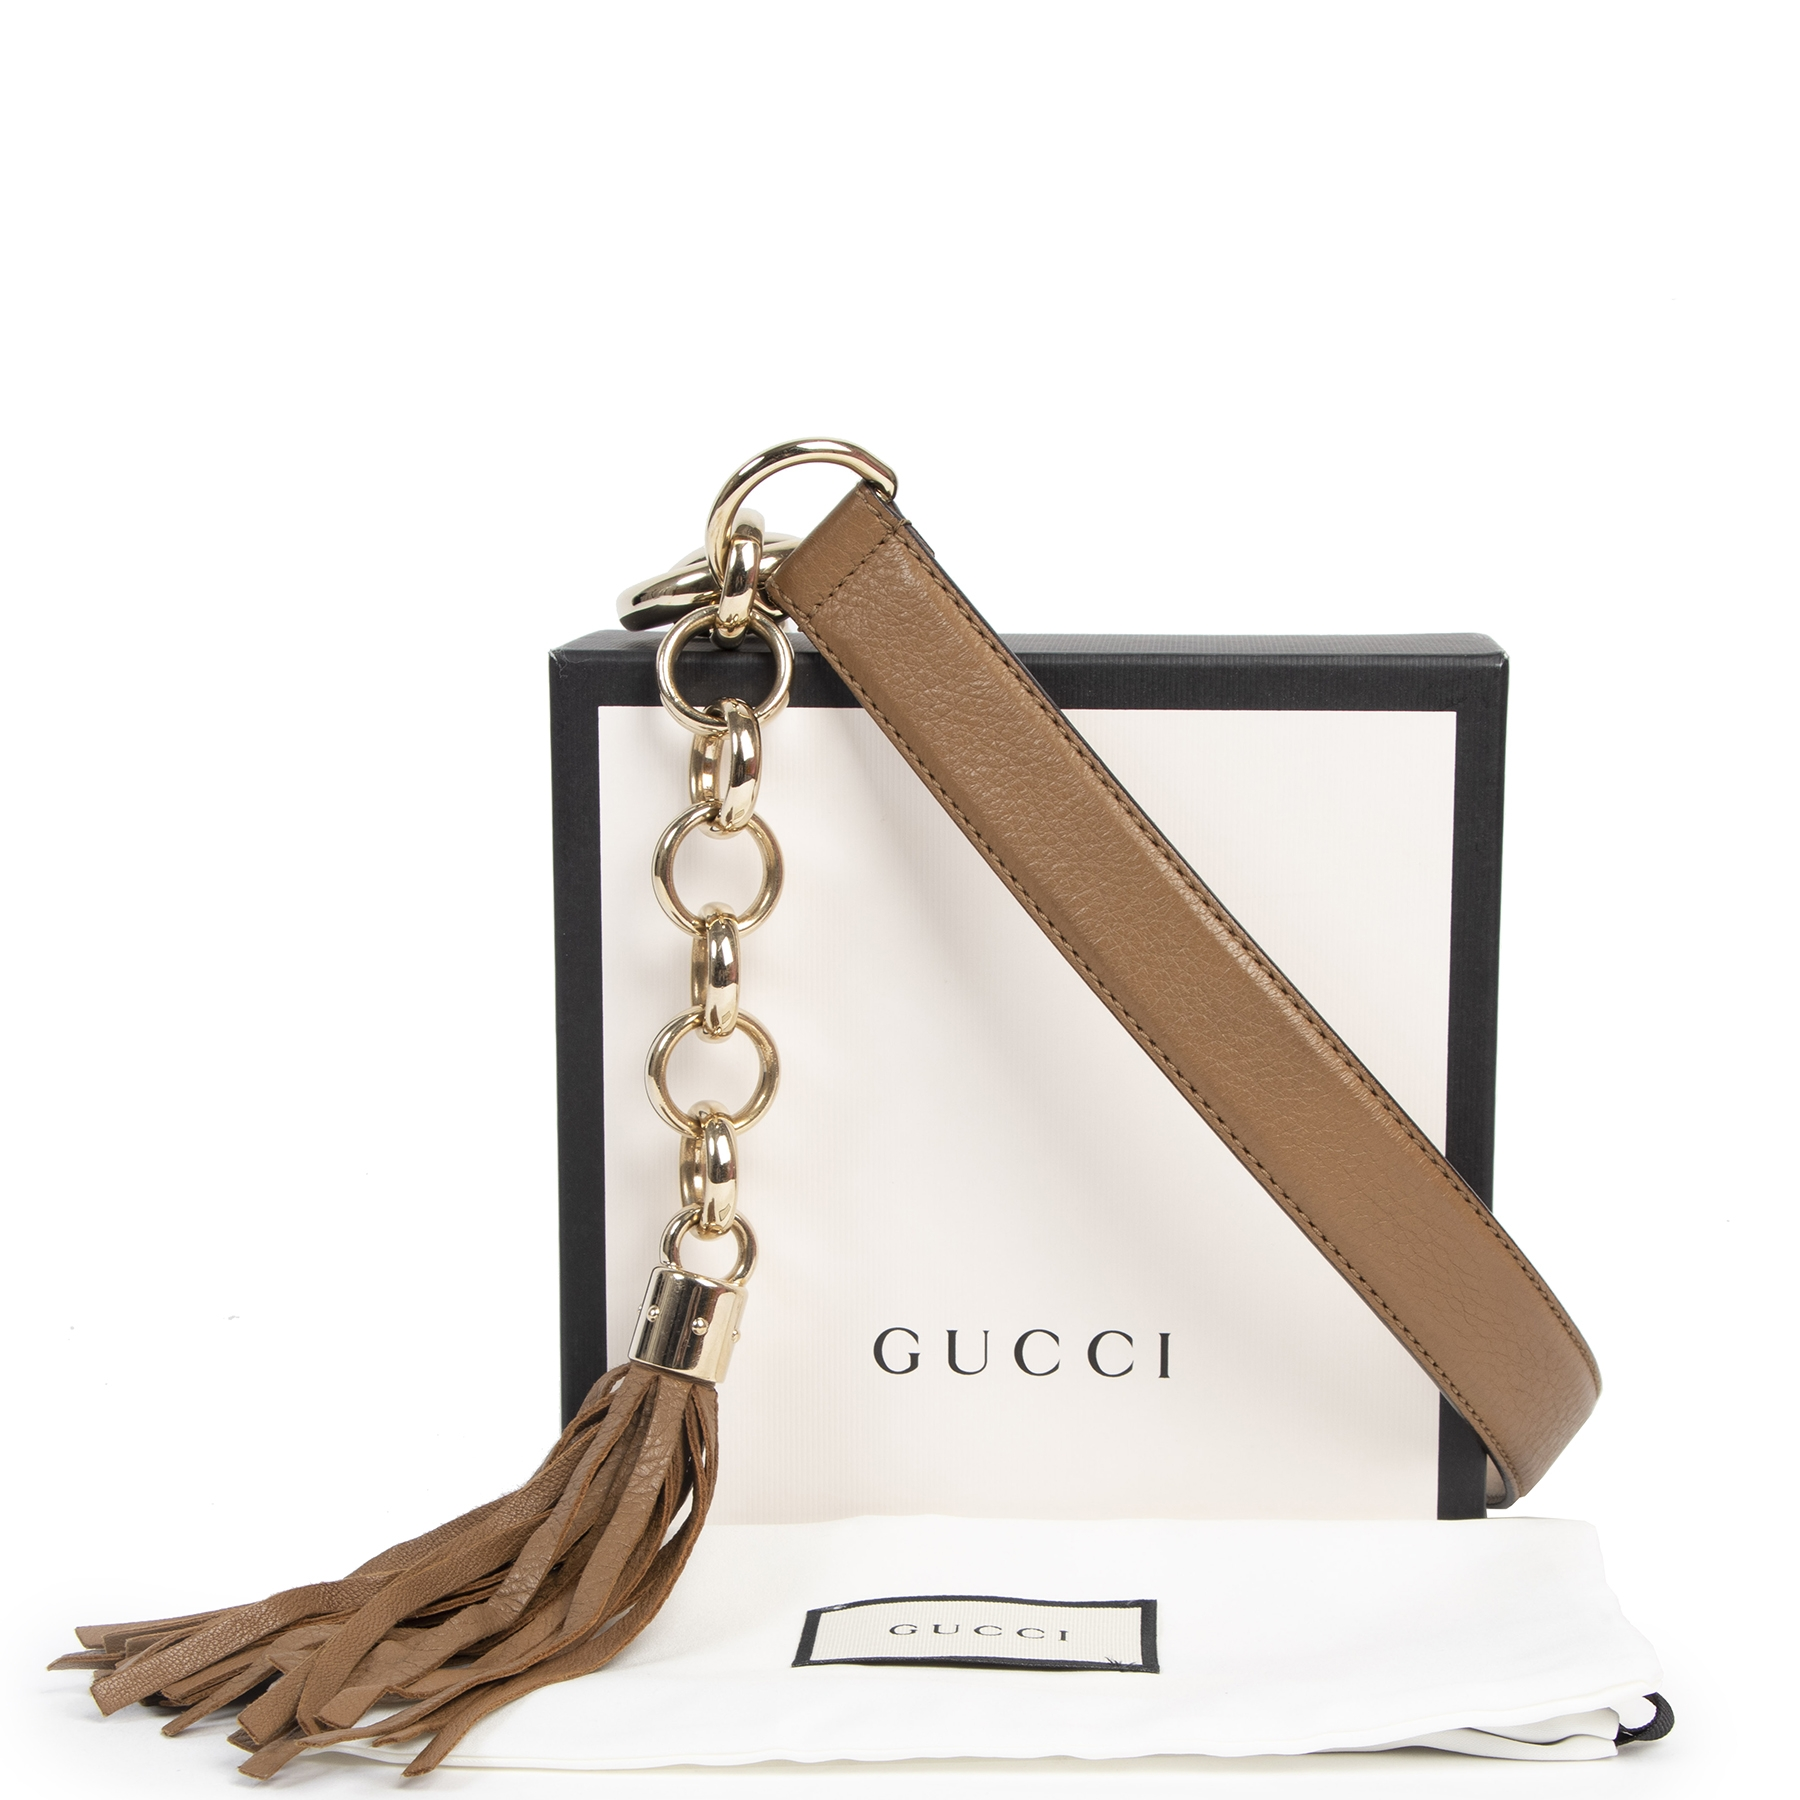 Authentic secondhand  Gucci Camel Leather Horsebit Tassel Belt - Size 85 designer accessories brands fashion luxury vintage webshop safe secure online shopping